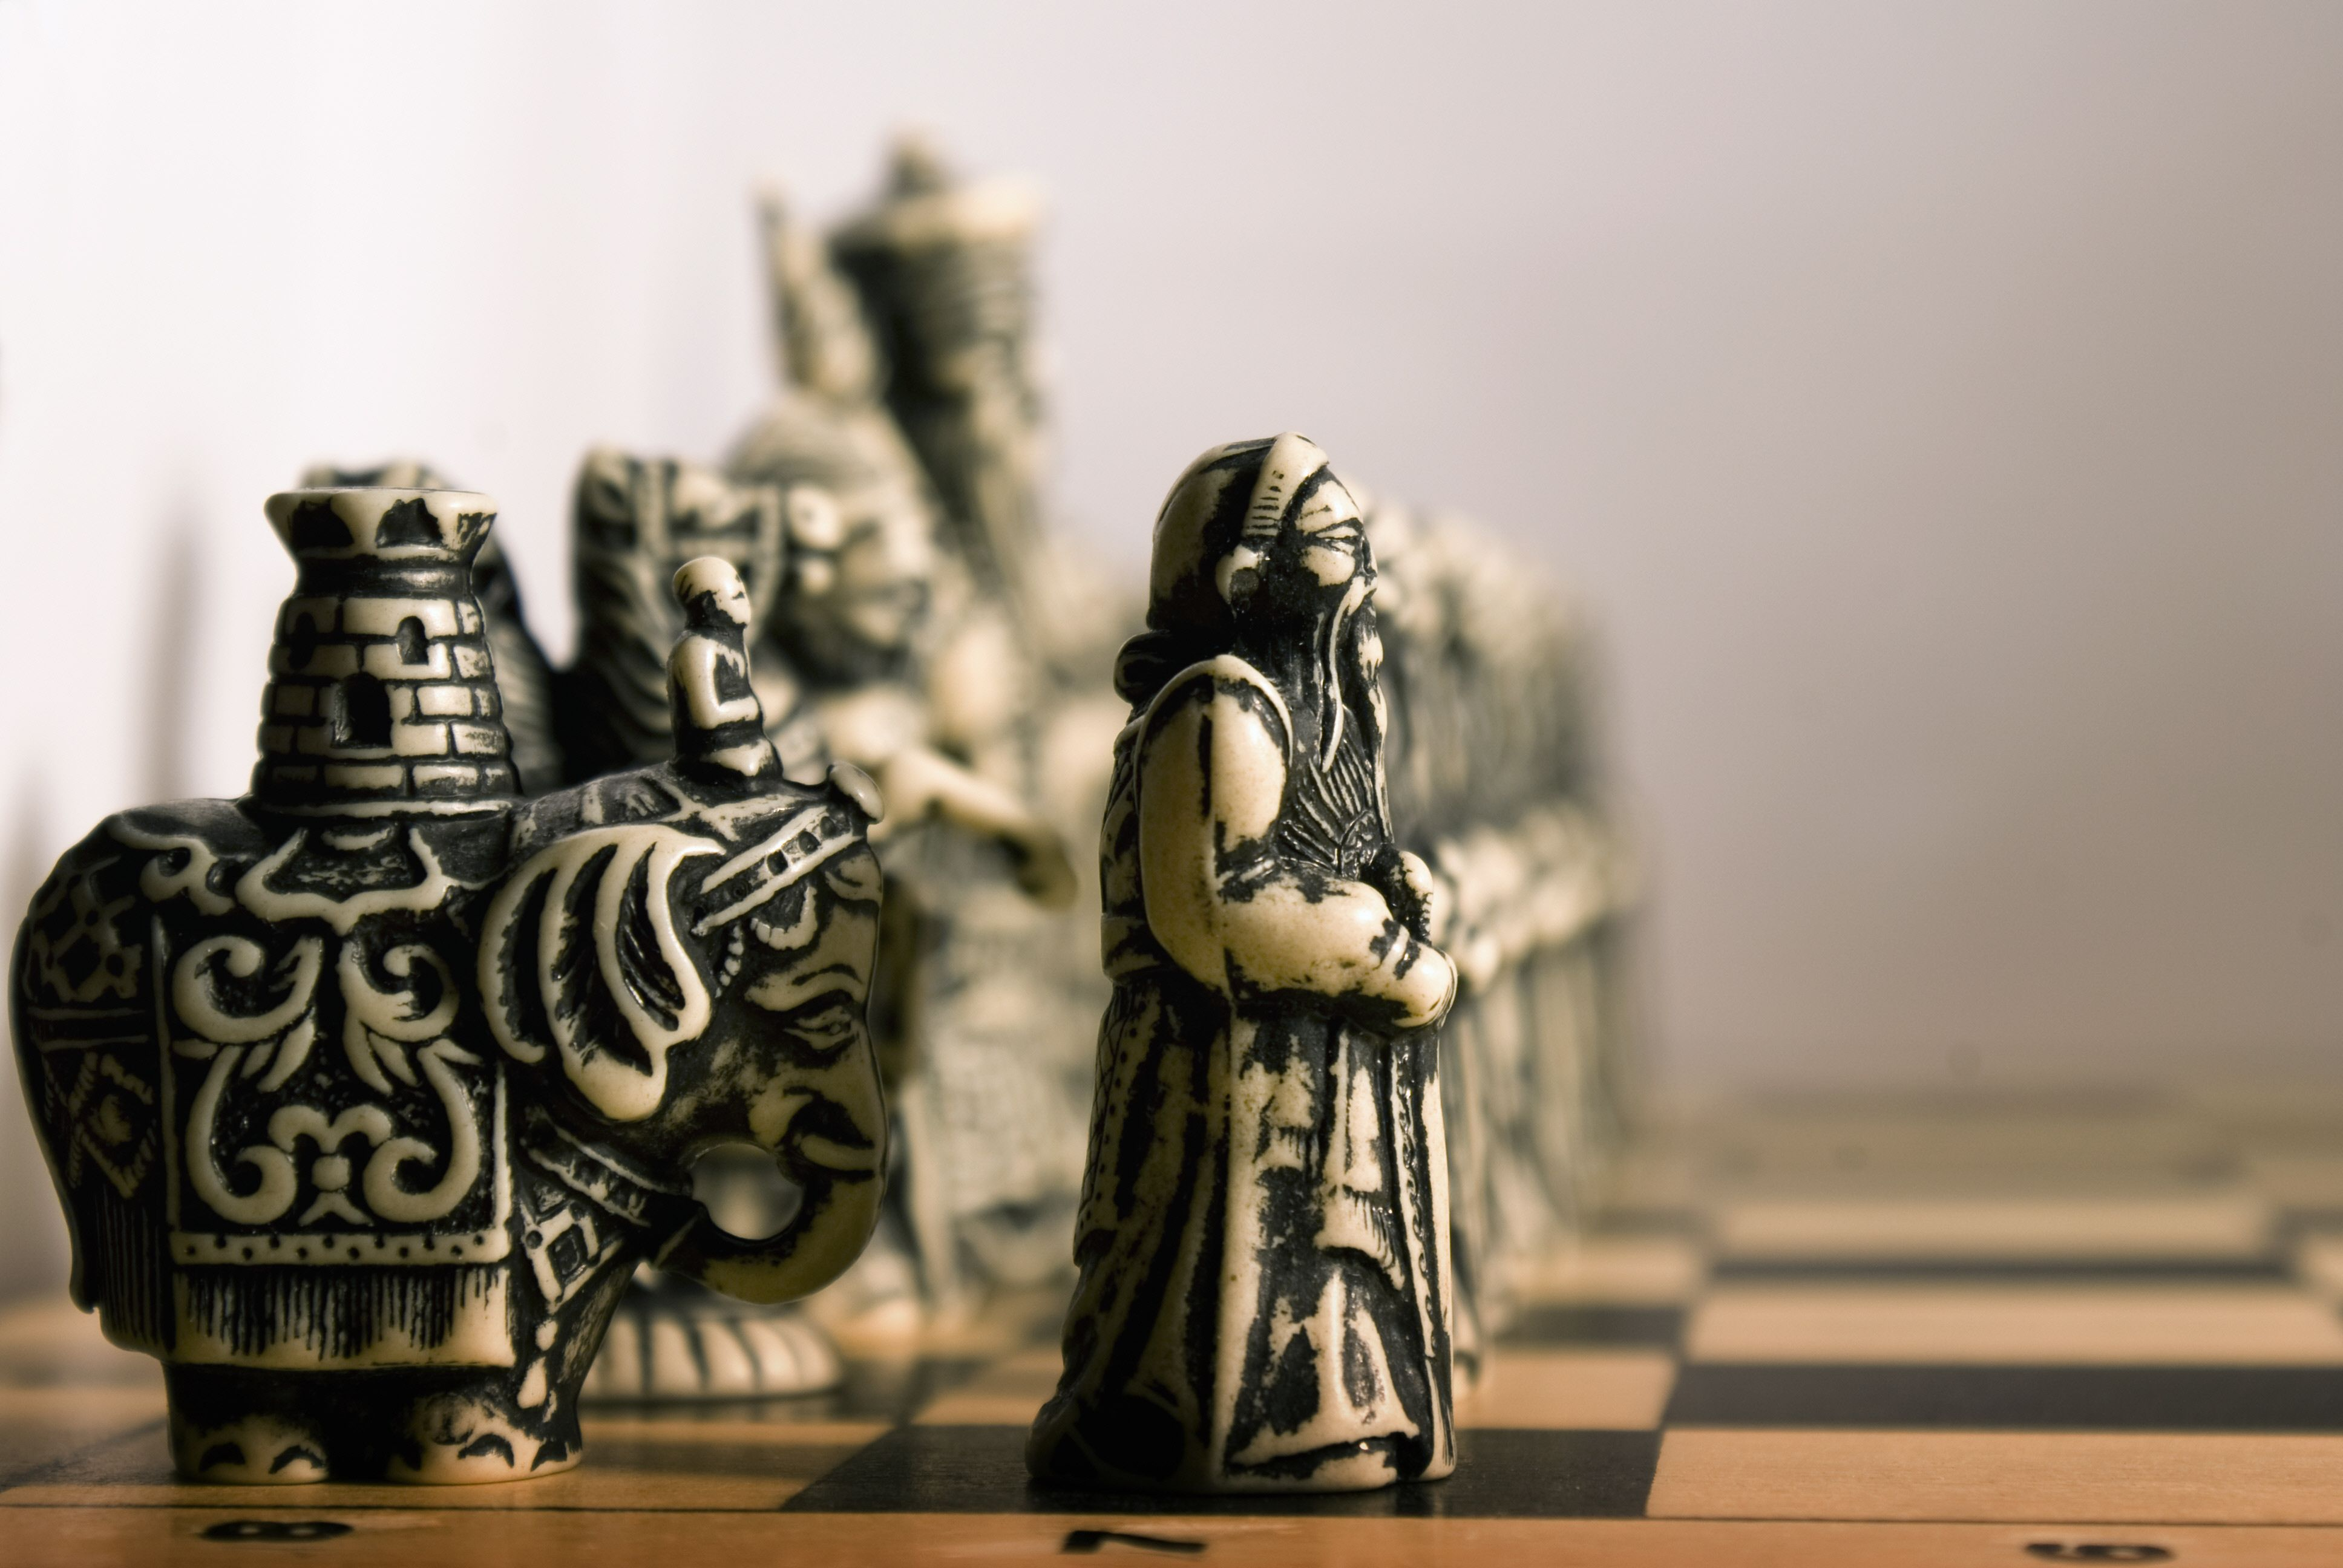 Game Chess Wallpaper Chess pieces, Chess, Chess set unique